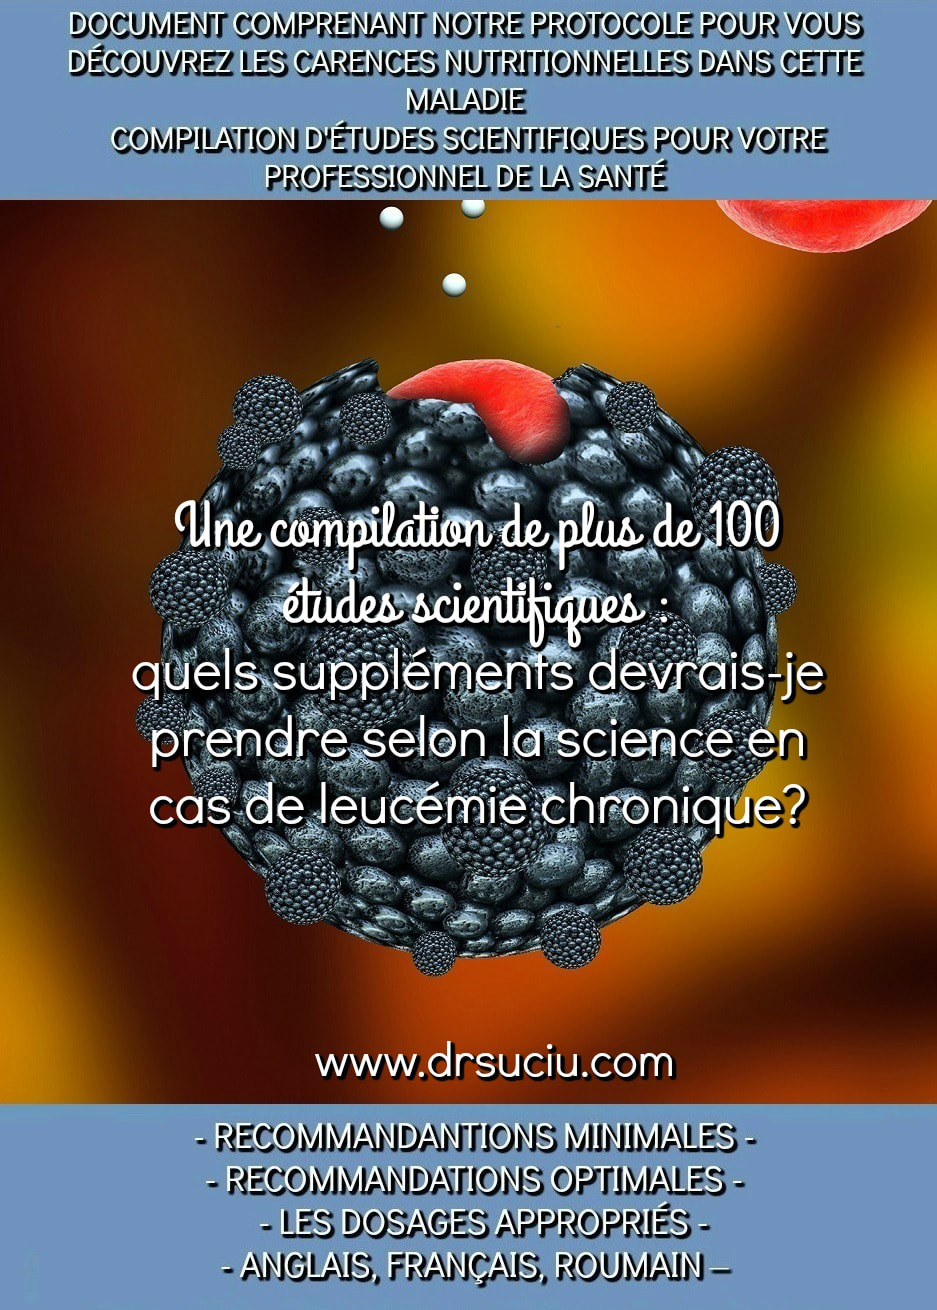 Photo drsuciu_protocole_supplementation_leucemie_chronique